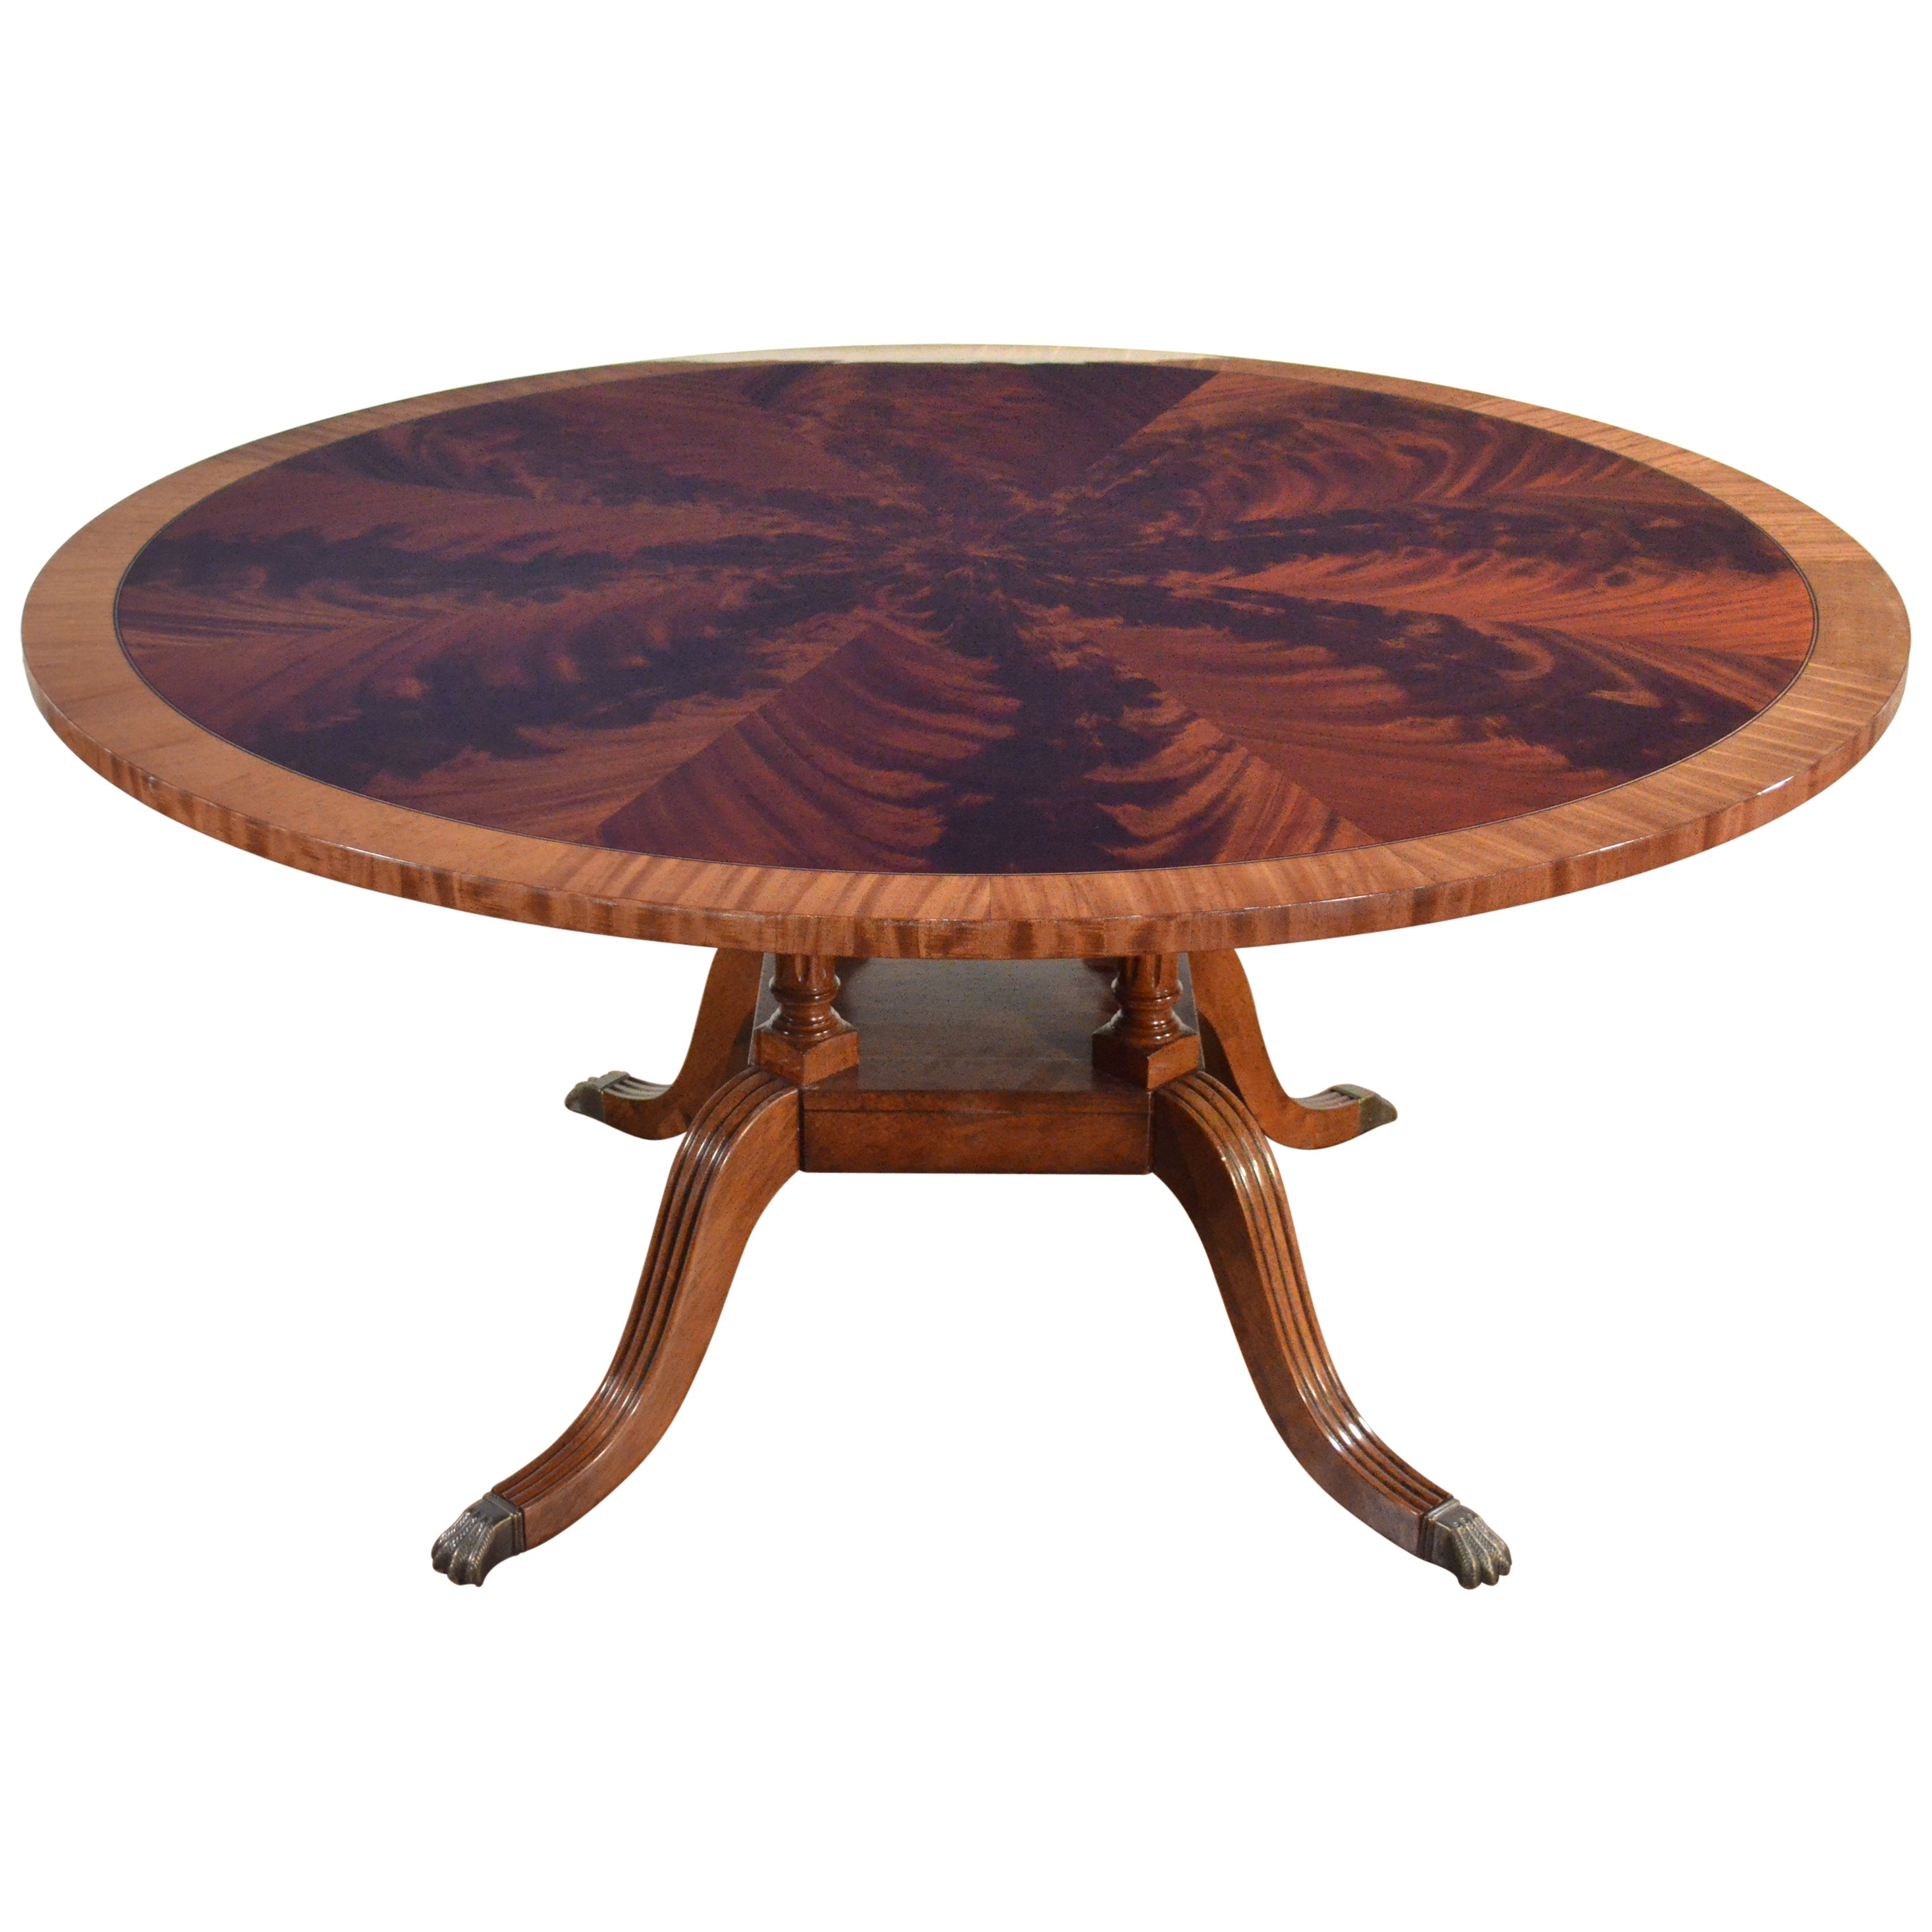 Round Mahogany Georgian Style Pedestal Dining Table by Leighton Hall